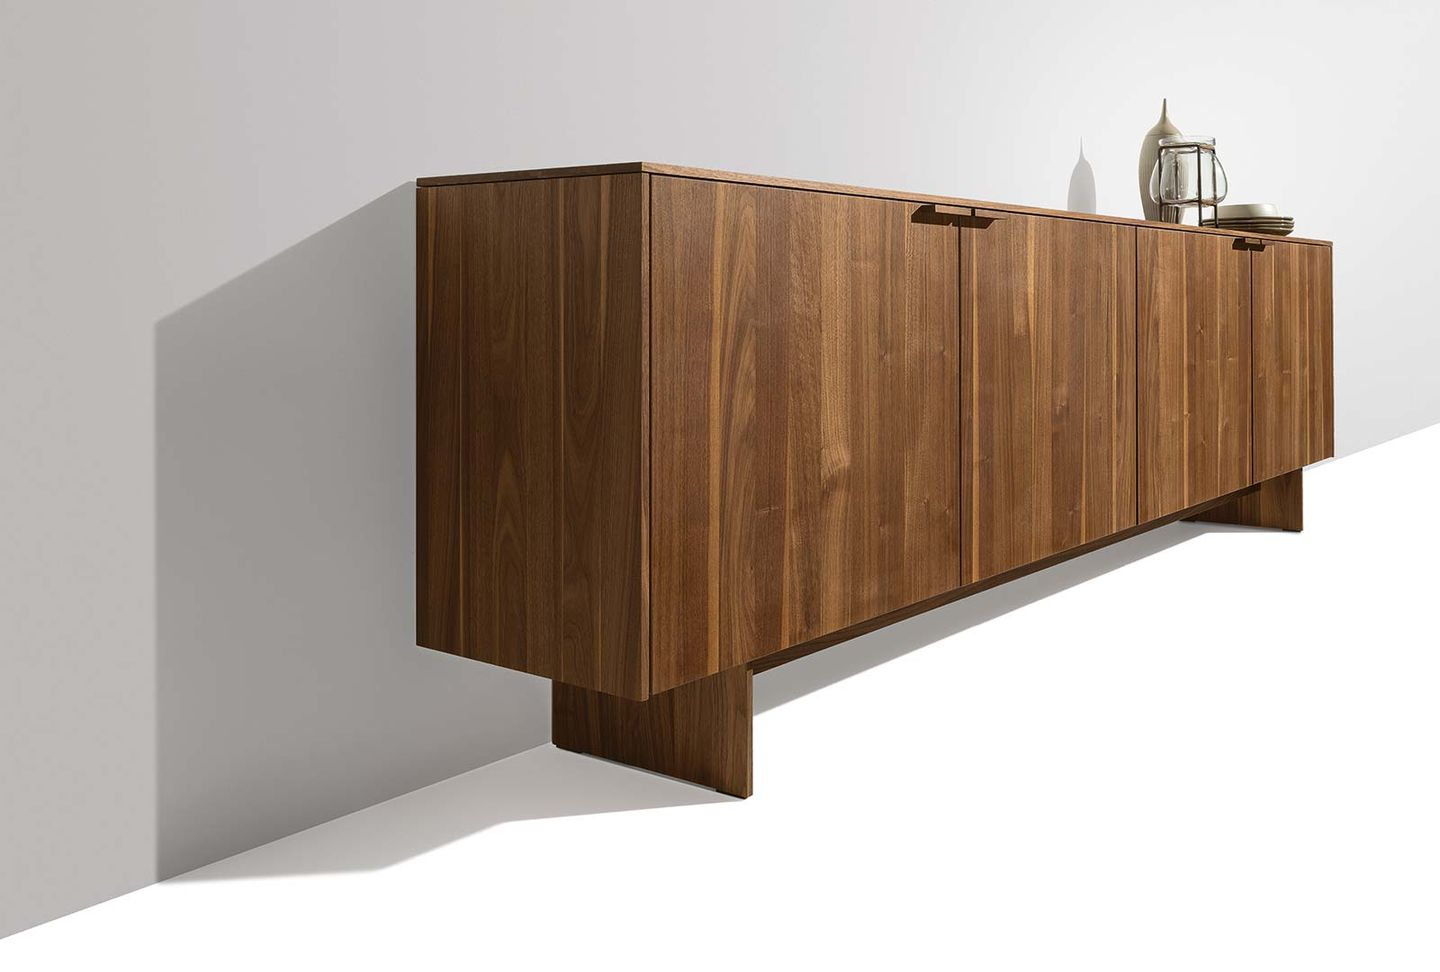 filigno sideboard with wooden panels in walnut from the side